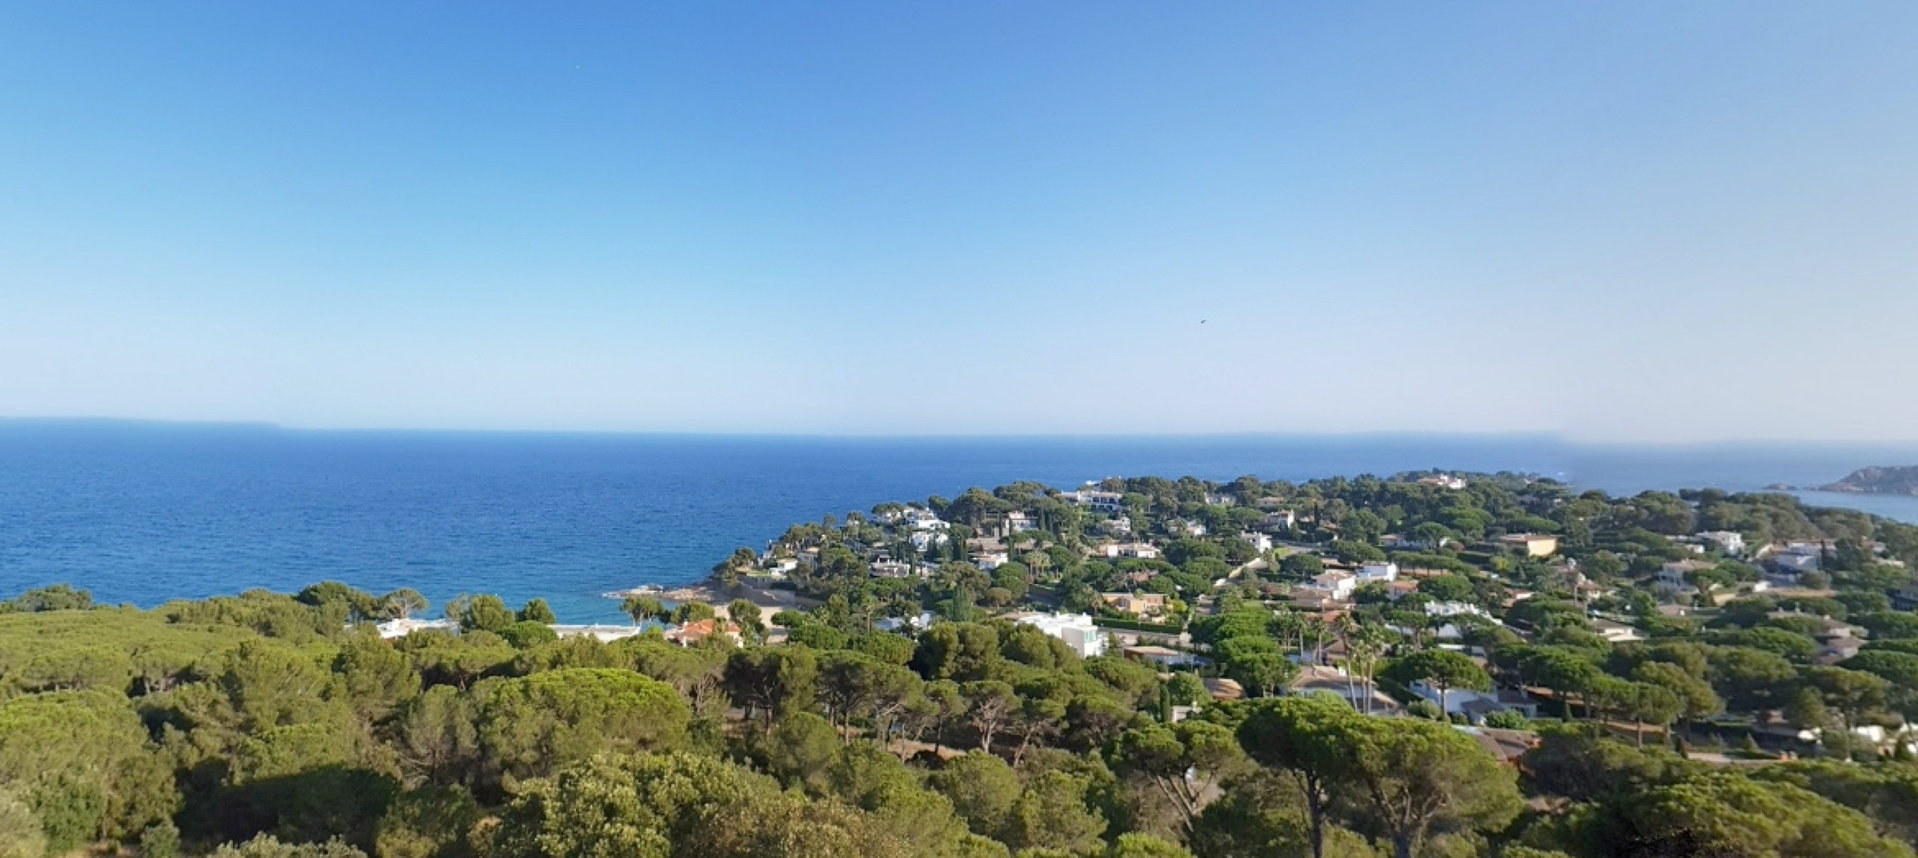 The 10 retreats with incredible views de Tossa de Mar